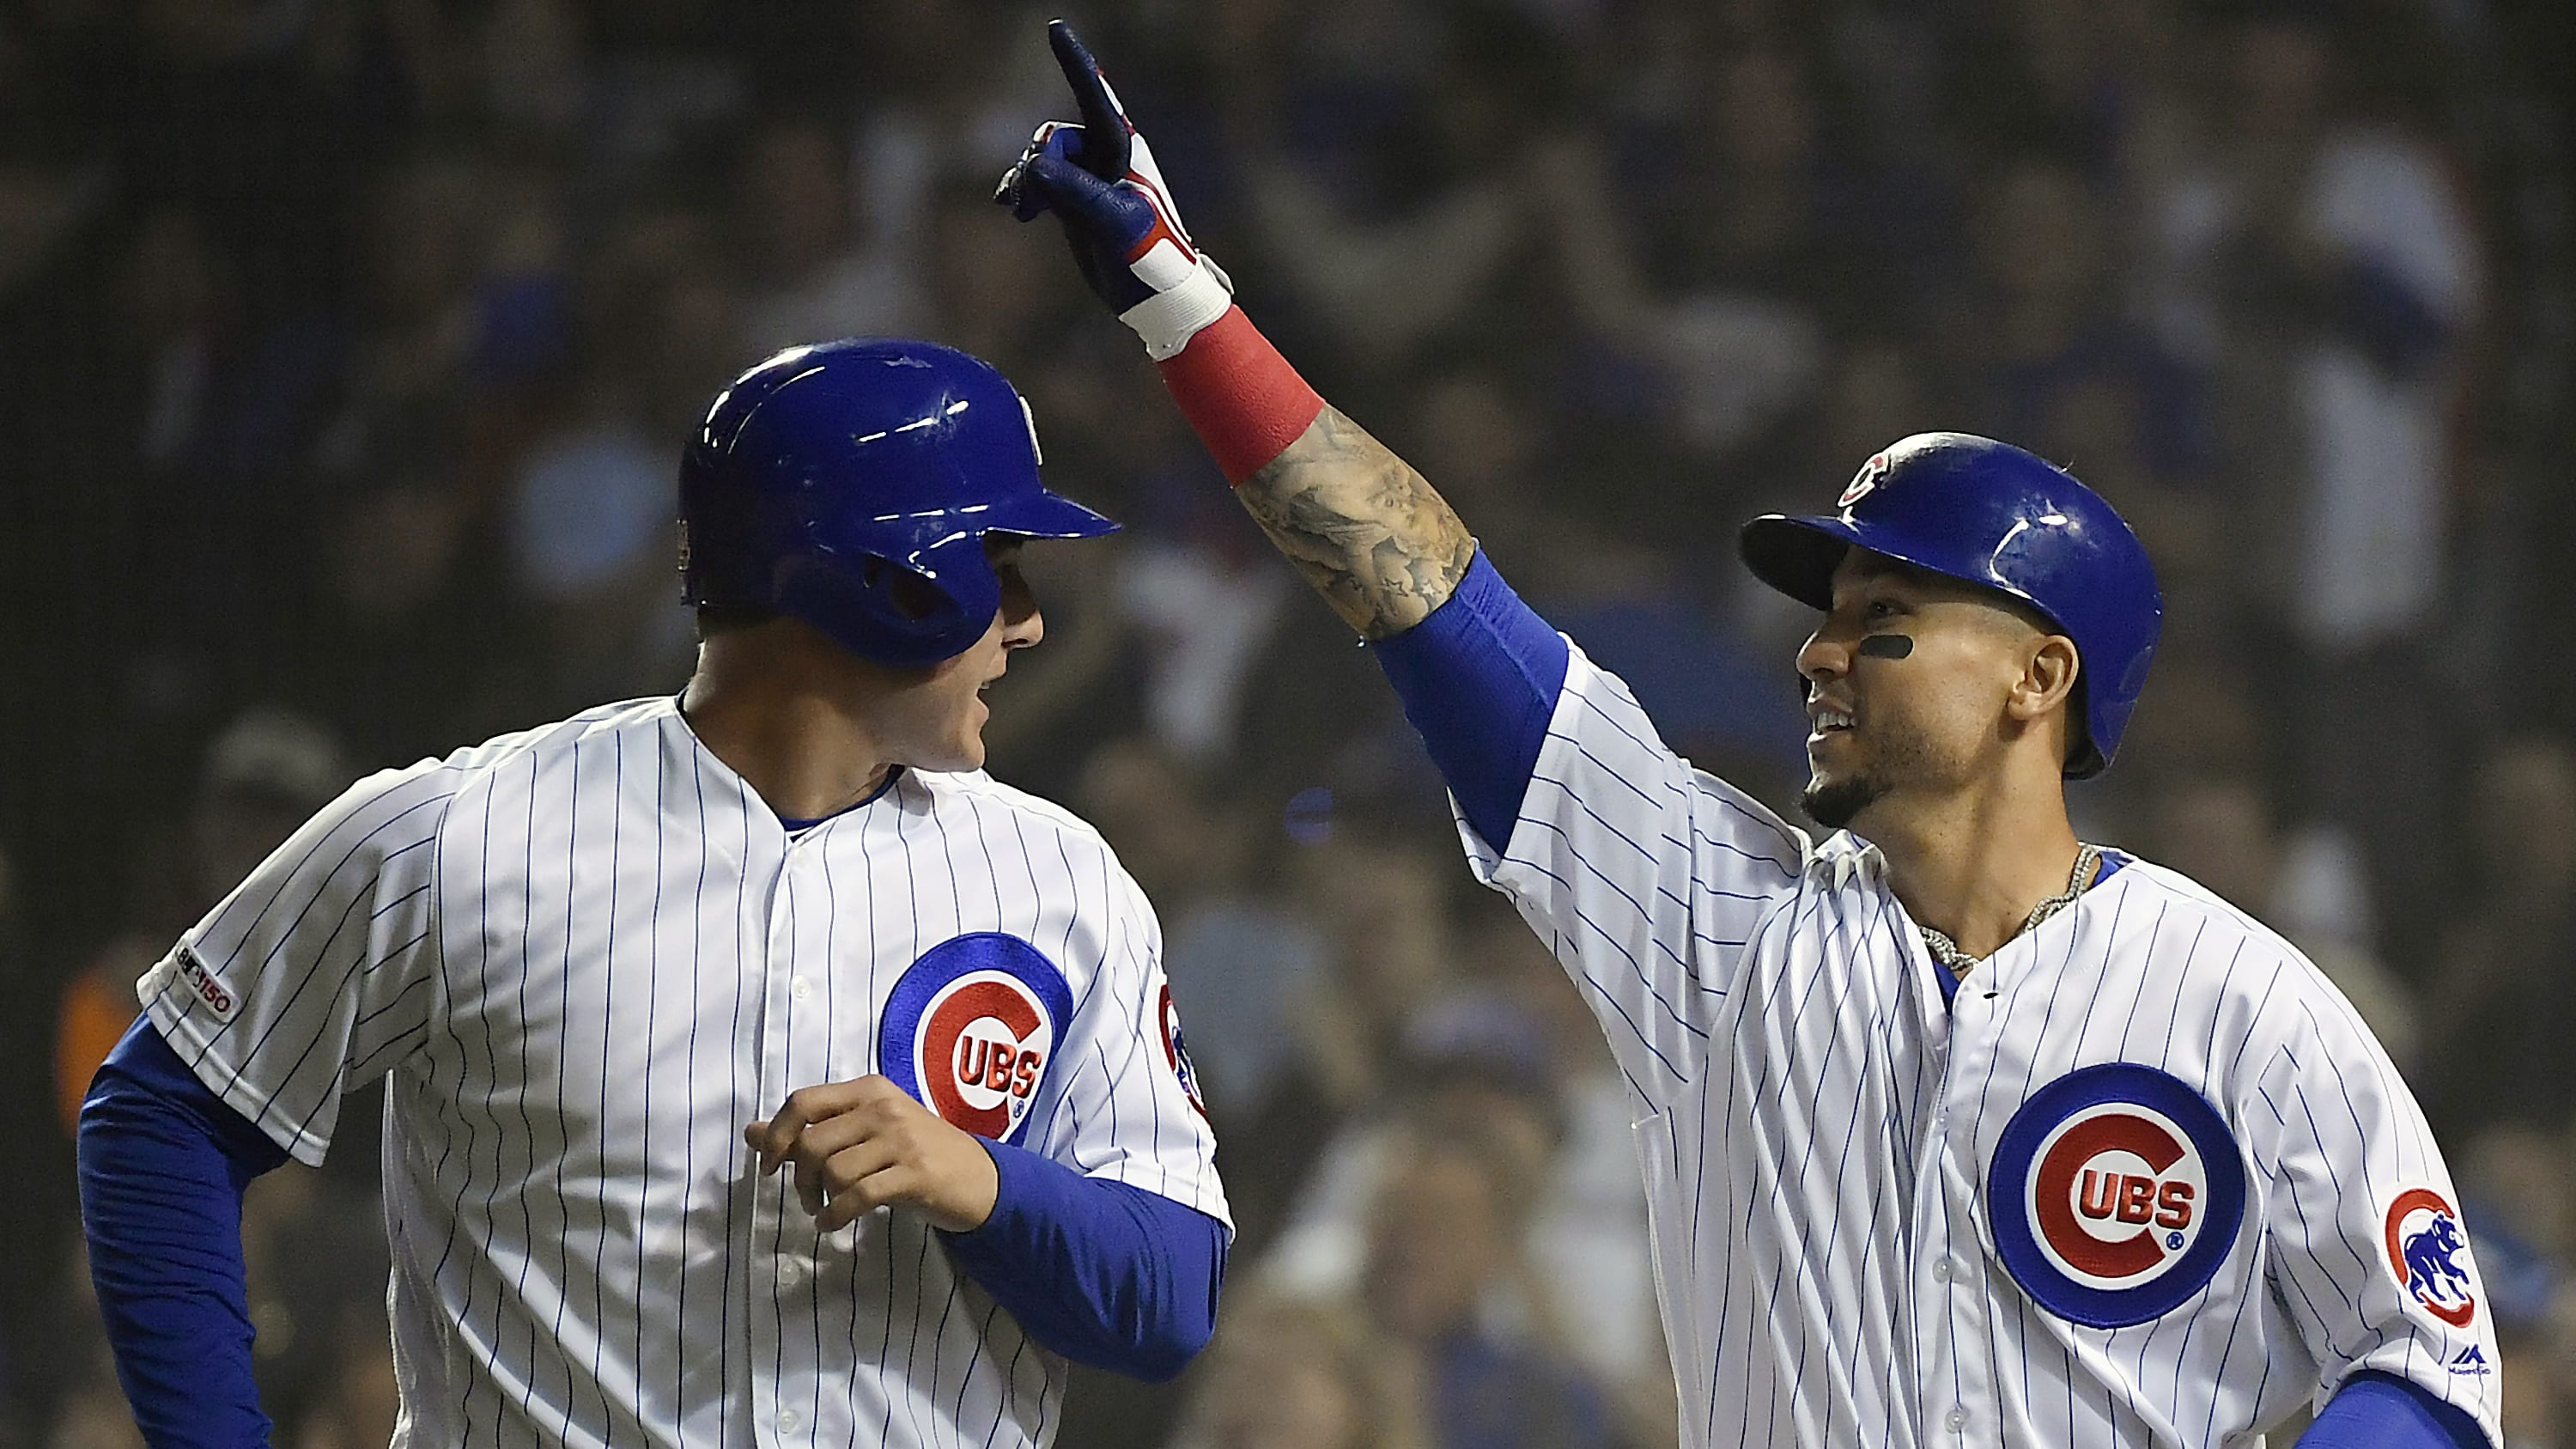 CHICAGO, ILLINOIS - JUNE 05: Carlos Gonzalez #2 of the Chicago Cubs and Anthony Rizzo #44 of the Chicago Cubs celebrate after scoring in the sixth inning against the Colorado Rockies at Wrigley Field on June 05, 2019 in Chicago, Illinois. (Photo by Quinn Harris/Getty Images)